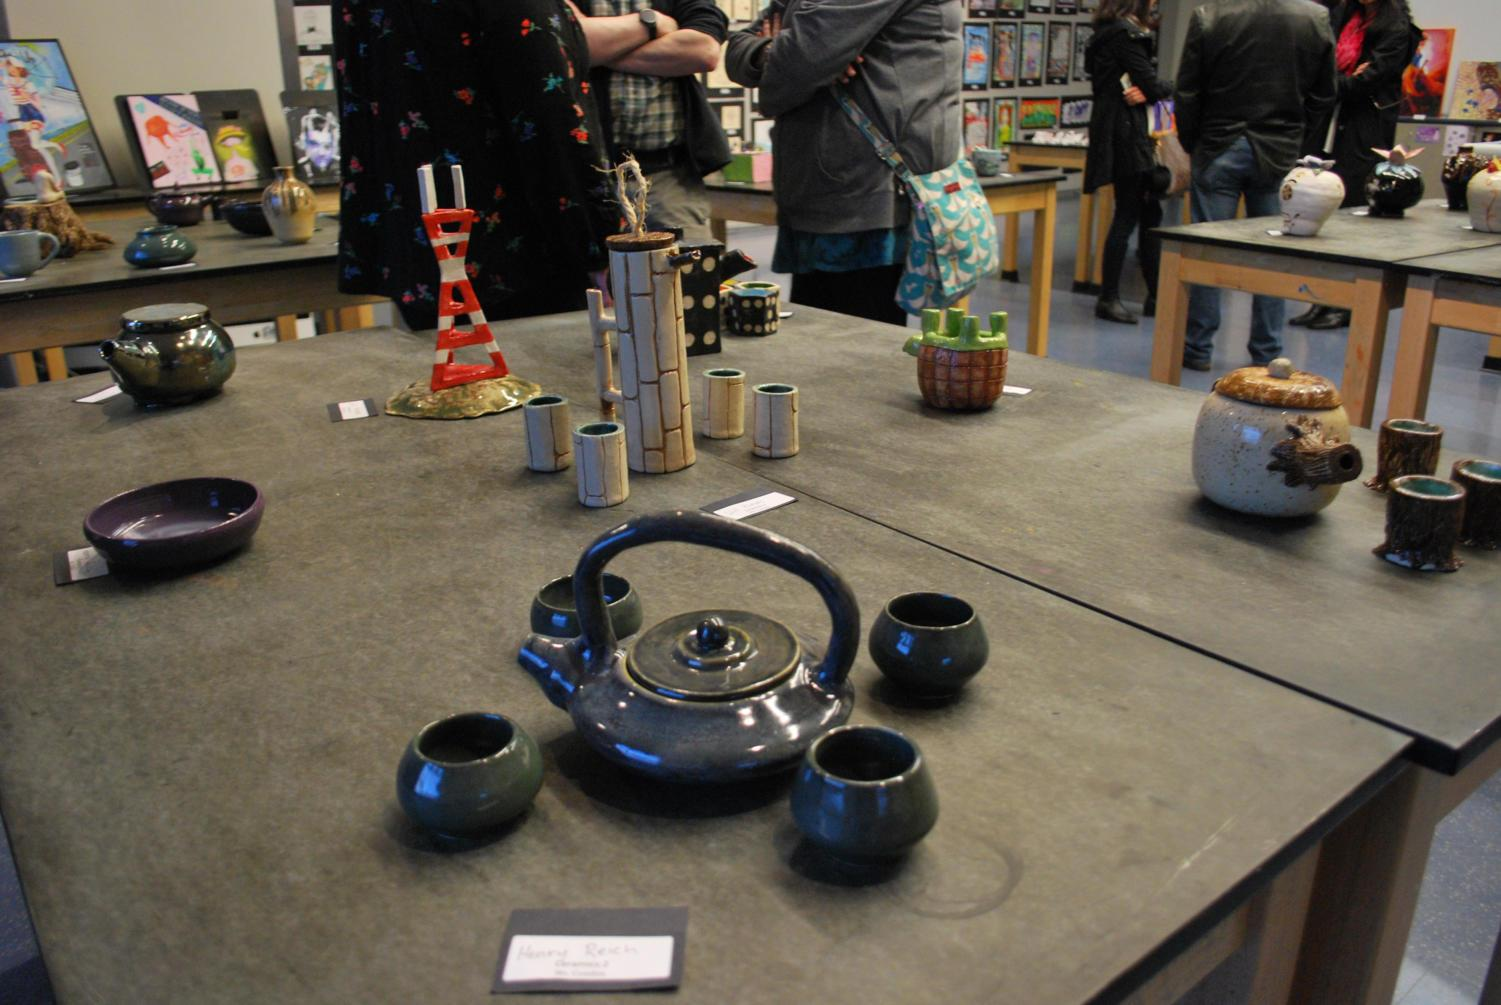 Tea+sets%2C+made+by+students+in+Ceramics+classes%2C+show+how+the+creativity+of+each+individual+student+affects+the+outcome+of+a+project.